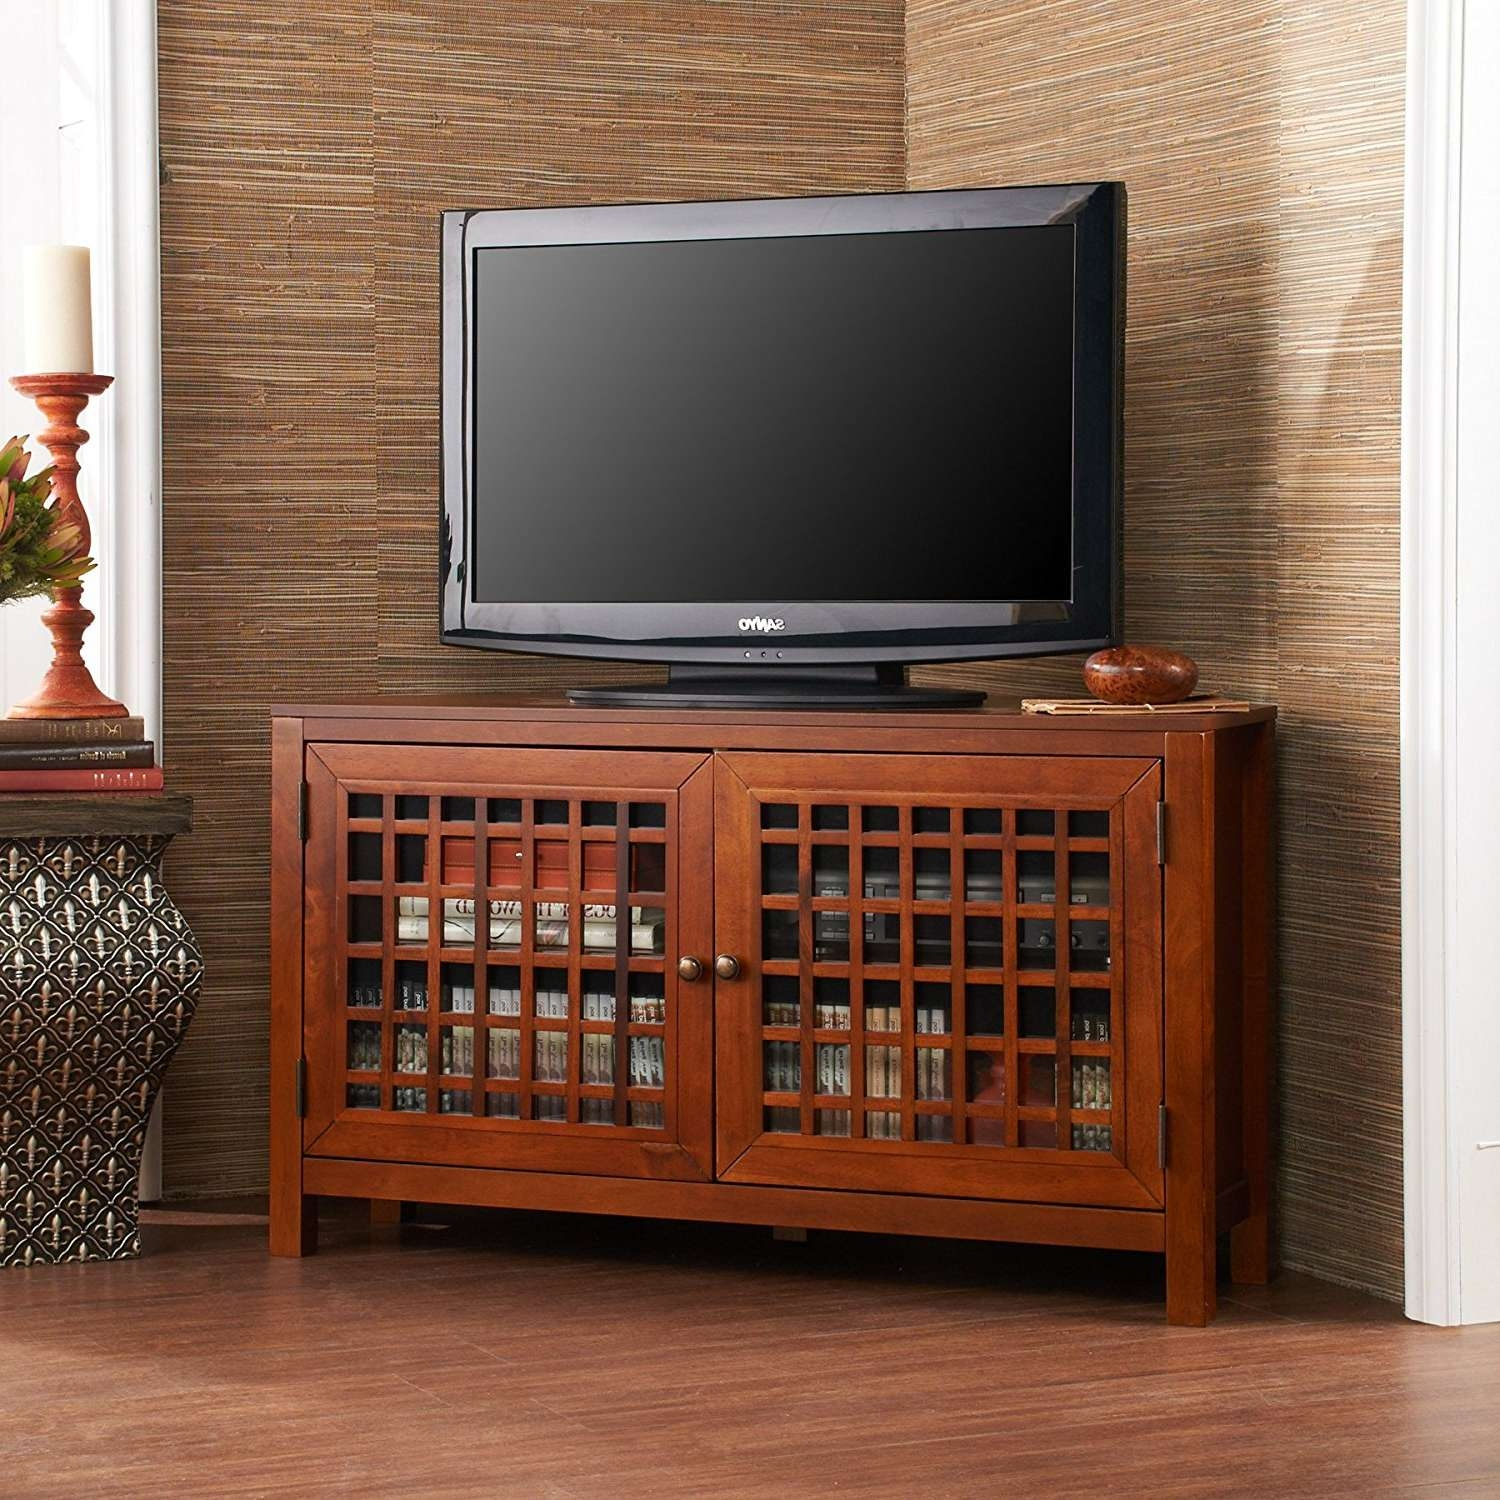 Tv : Wonderful 24 Inch Corner Tv Stands Mainstays Tv Stand For For 24 Inch Tv Stands (View 10 of 15)